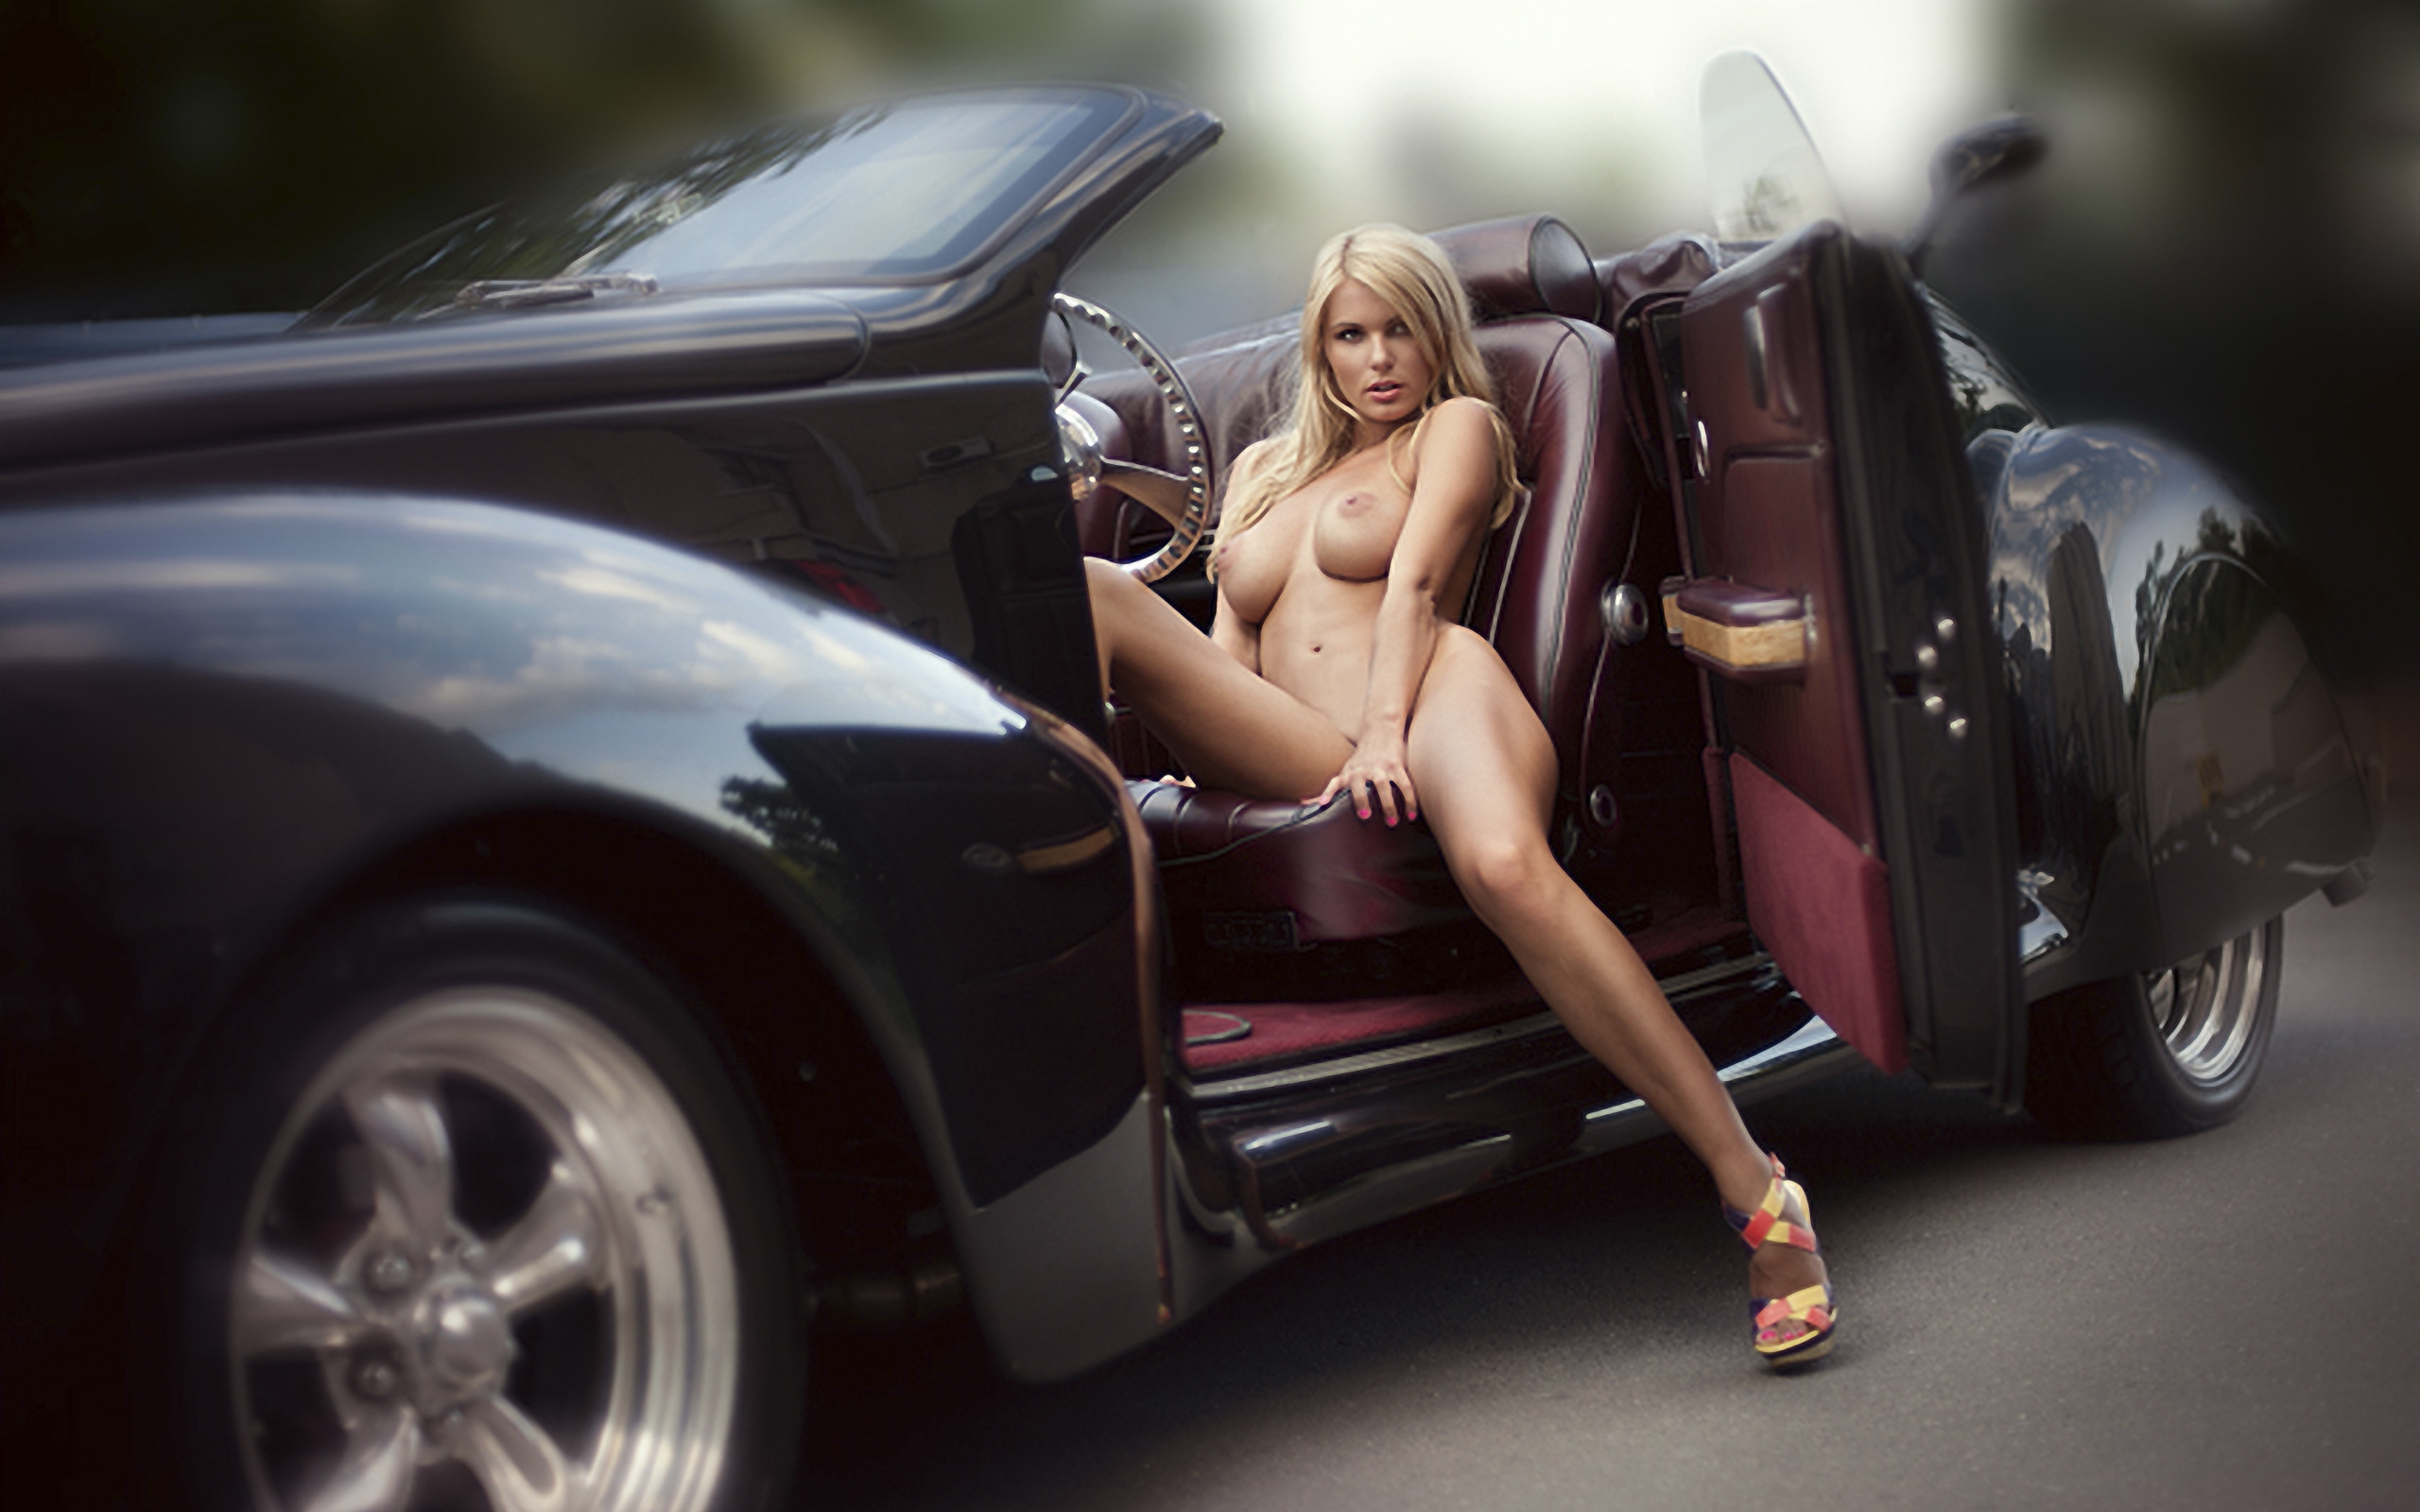 Girls And Cars Naked